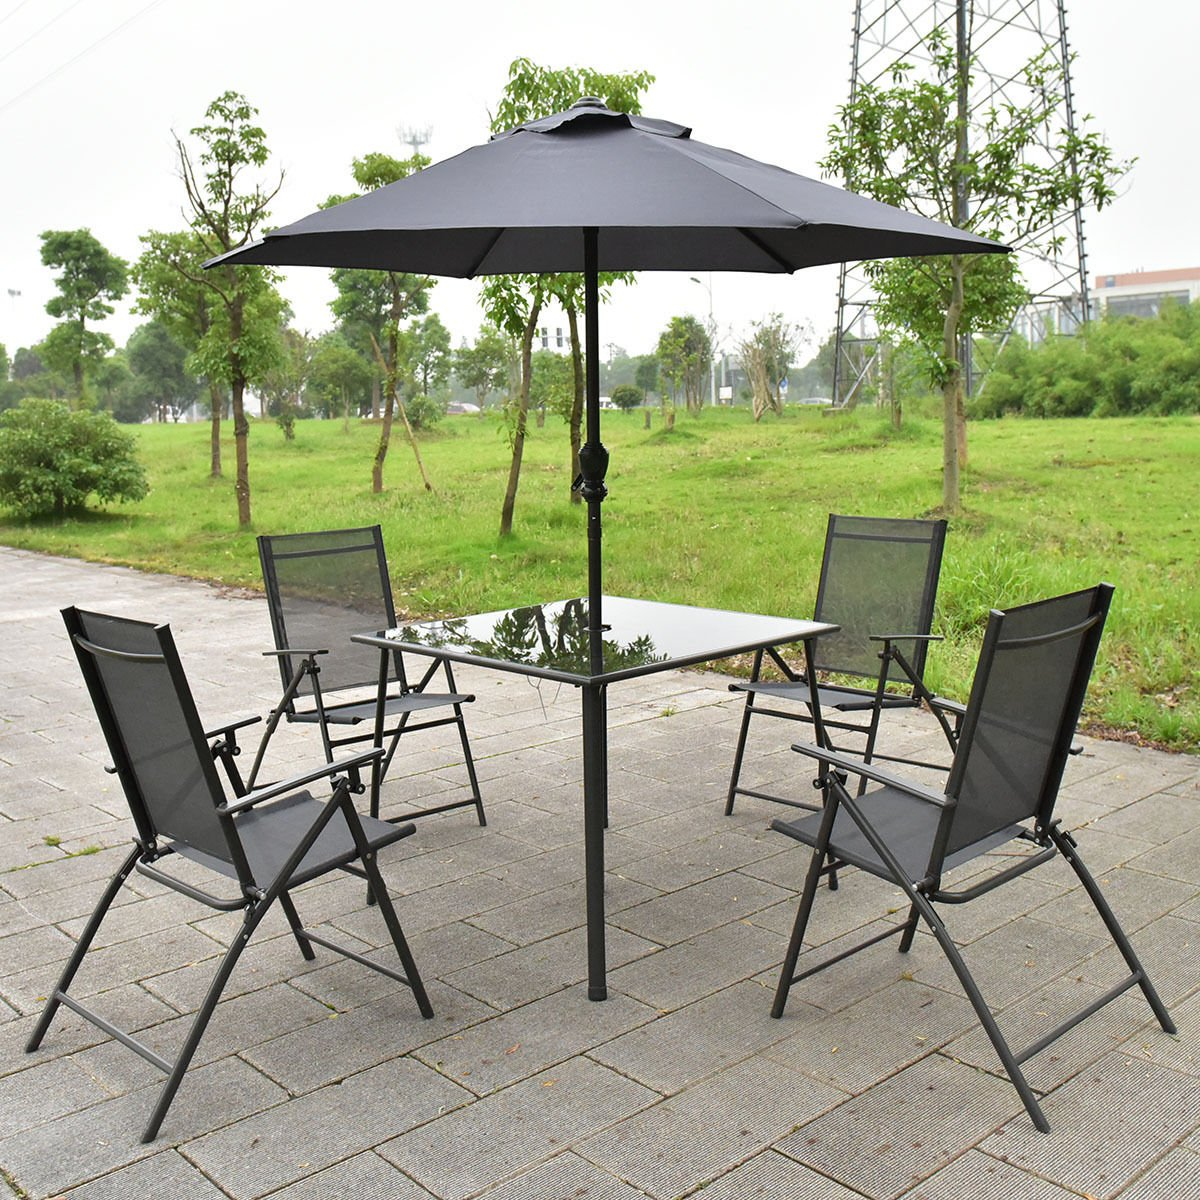 6PCS Patio Garden Set furniture 4 Folding Chairs Table with Umbrella Gray New : set of 4 folding chairs - Cheerinfomania.Com